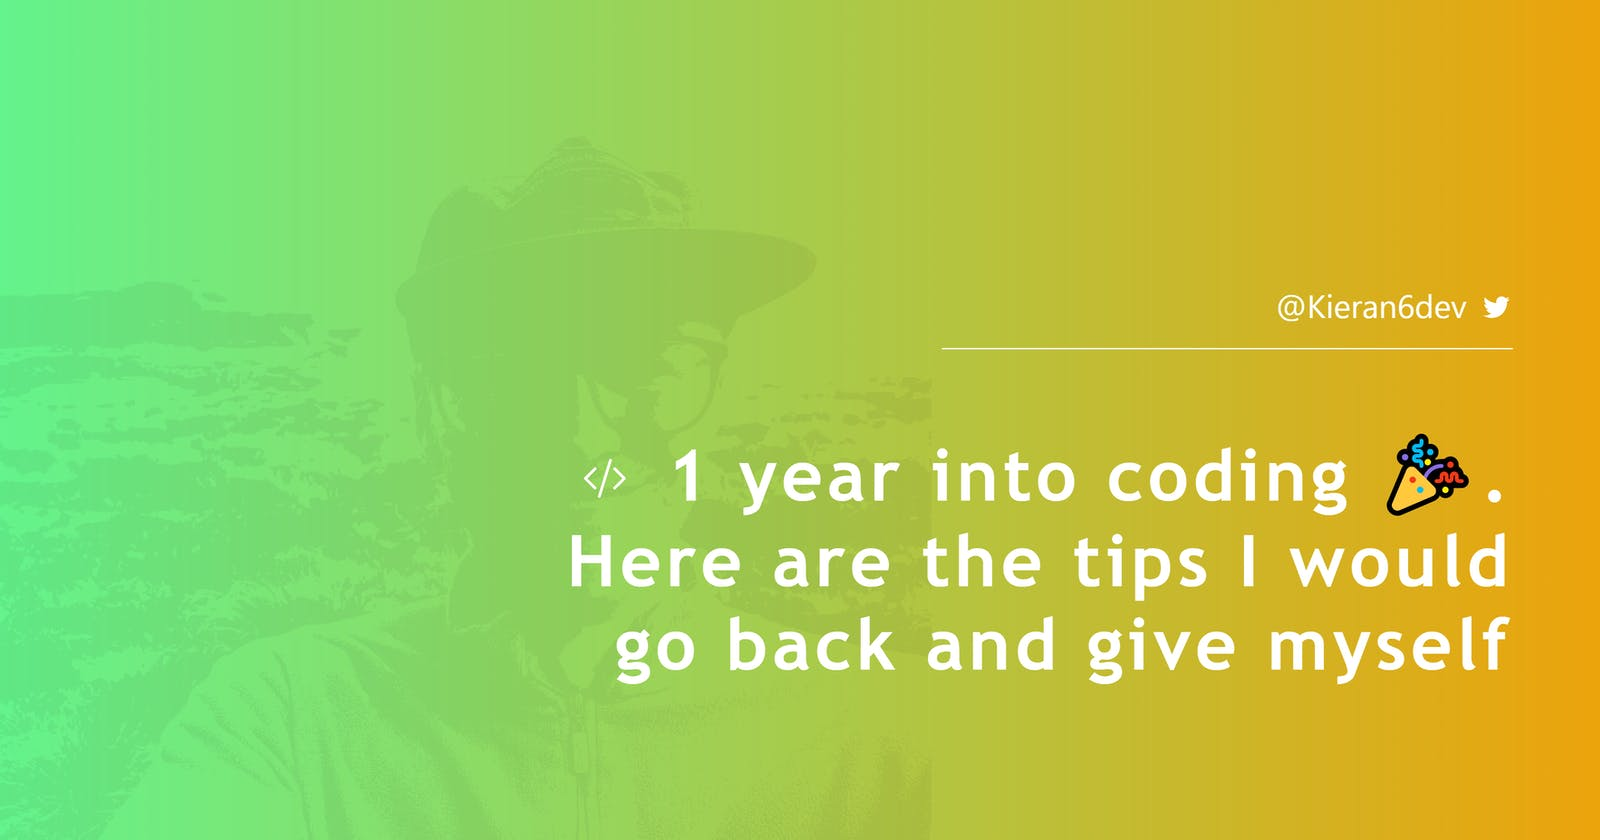 1 year into coding 🎉. Here are the tips I would go back and give myself